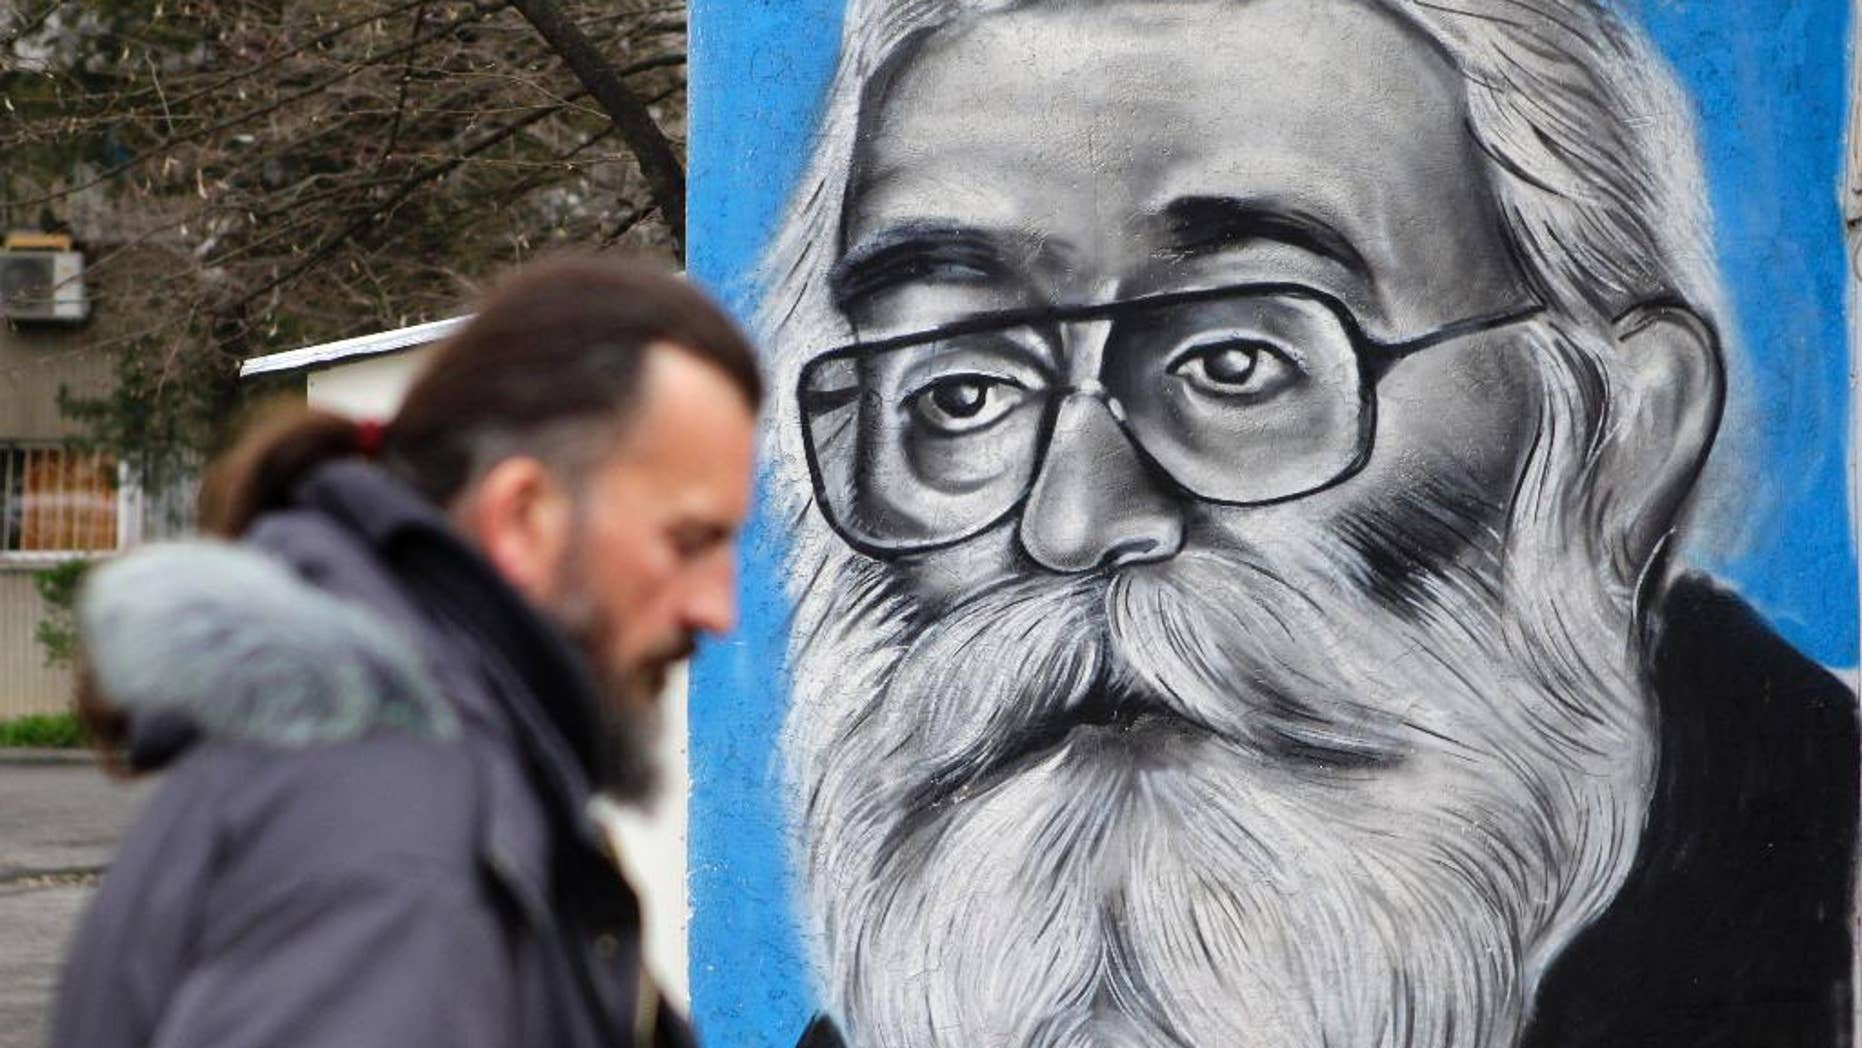 A man walks past a mural depicting Radovan Karadzic in Belgrade, Serbia, Thursday, March 24, 2016. A United Nations war crimes tribunal is passing judgment Thursday on former Bosnian Serb leader Radovan Karadzic, a landmark case against one of the alleged architects of Serb atrocities during Bosnia's 1992-95 war that left 100,000 dead. (AP Photo/Andrej Cukic)